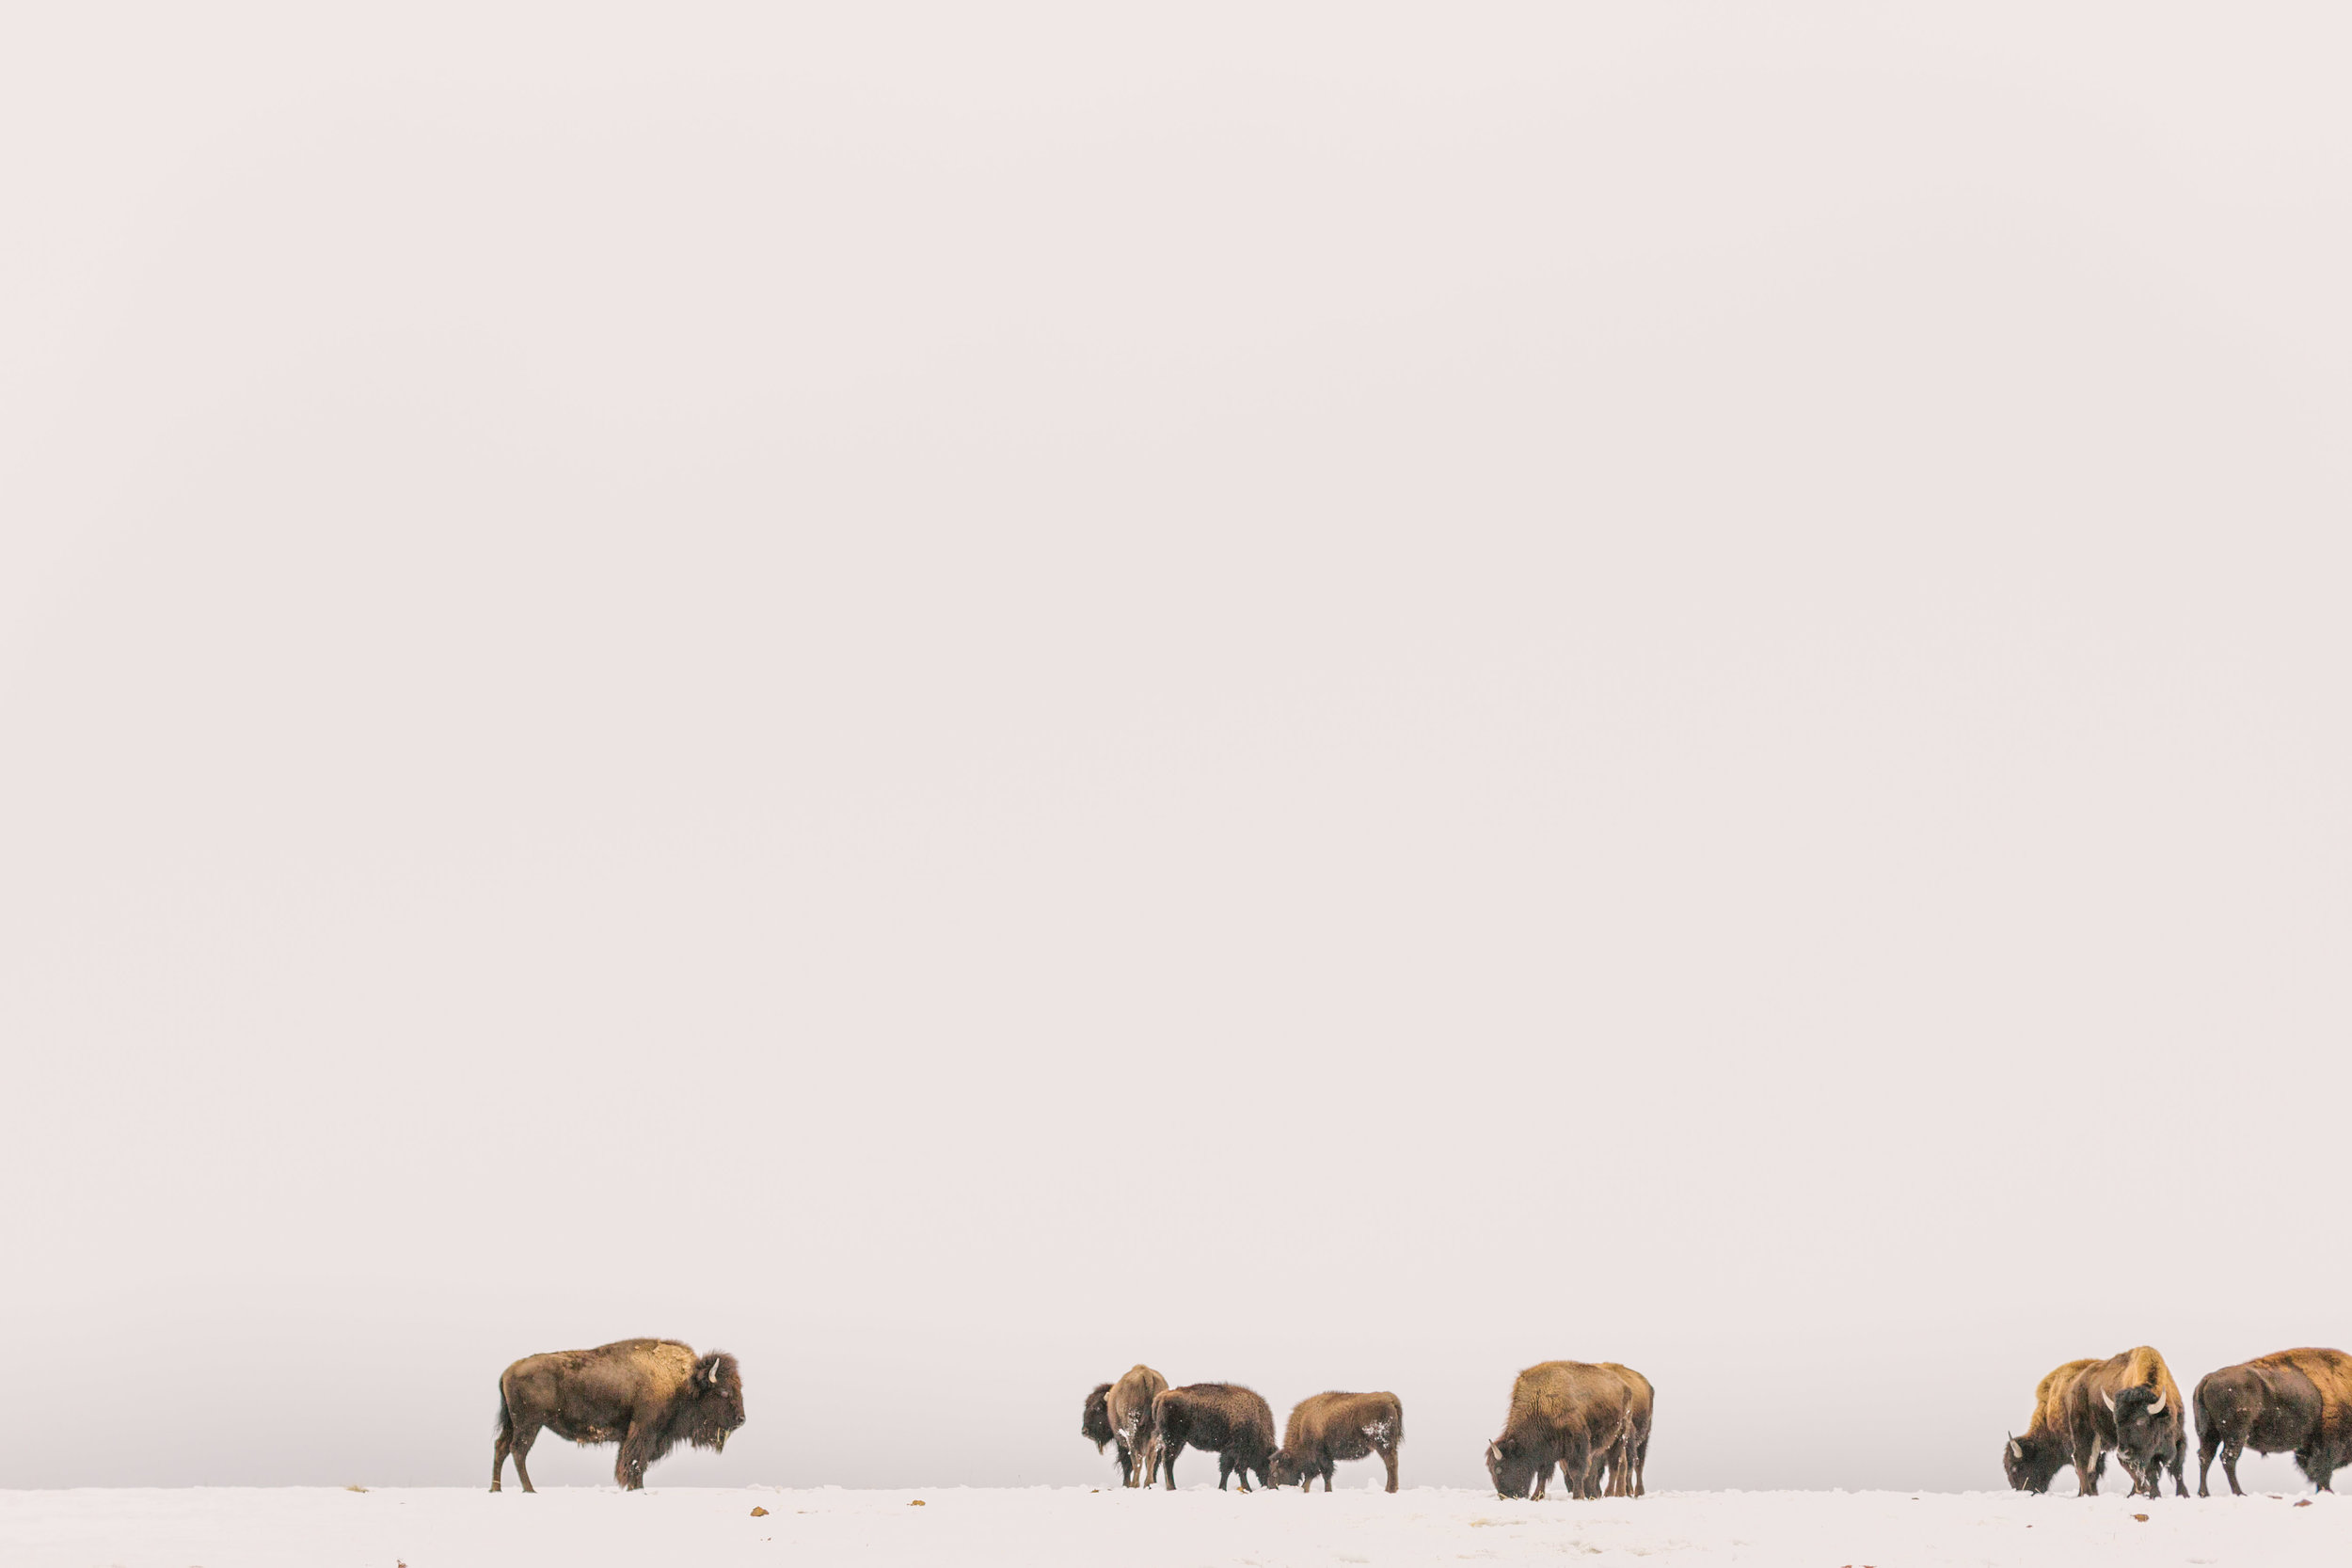 Chelsea Macor Photography Nature Photography Print of Buffalo in Snow-5.jpg